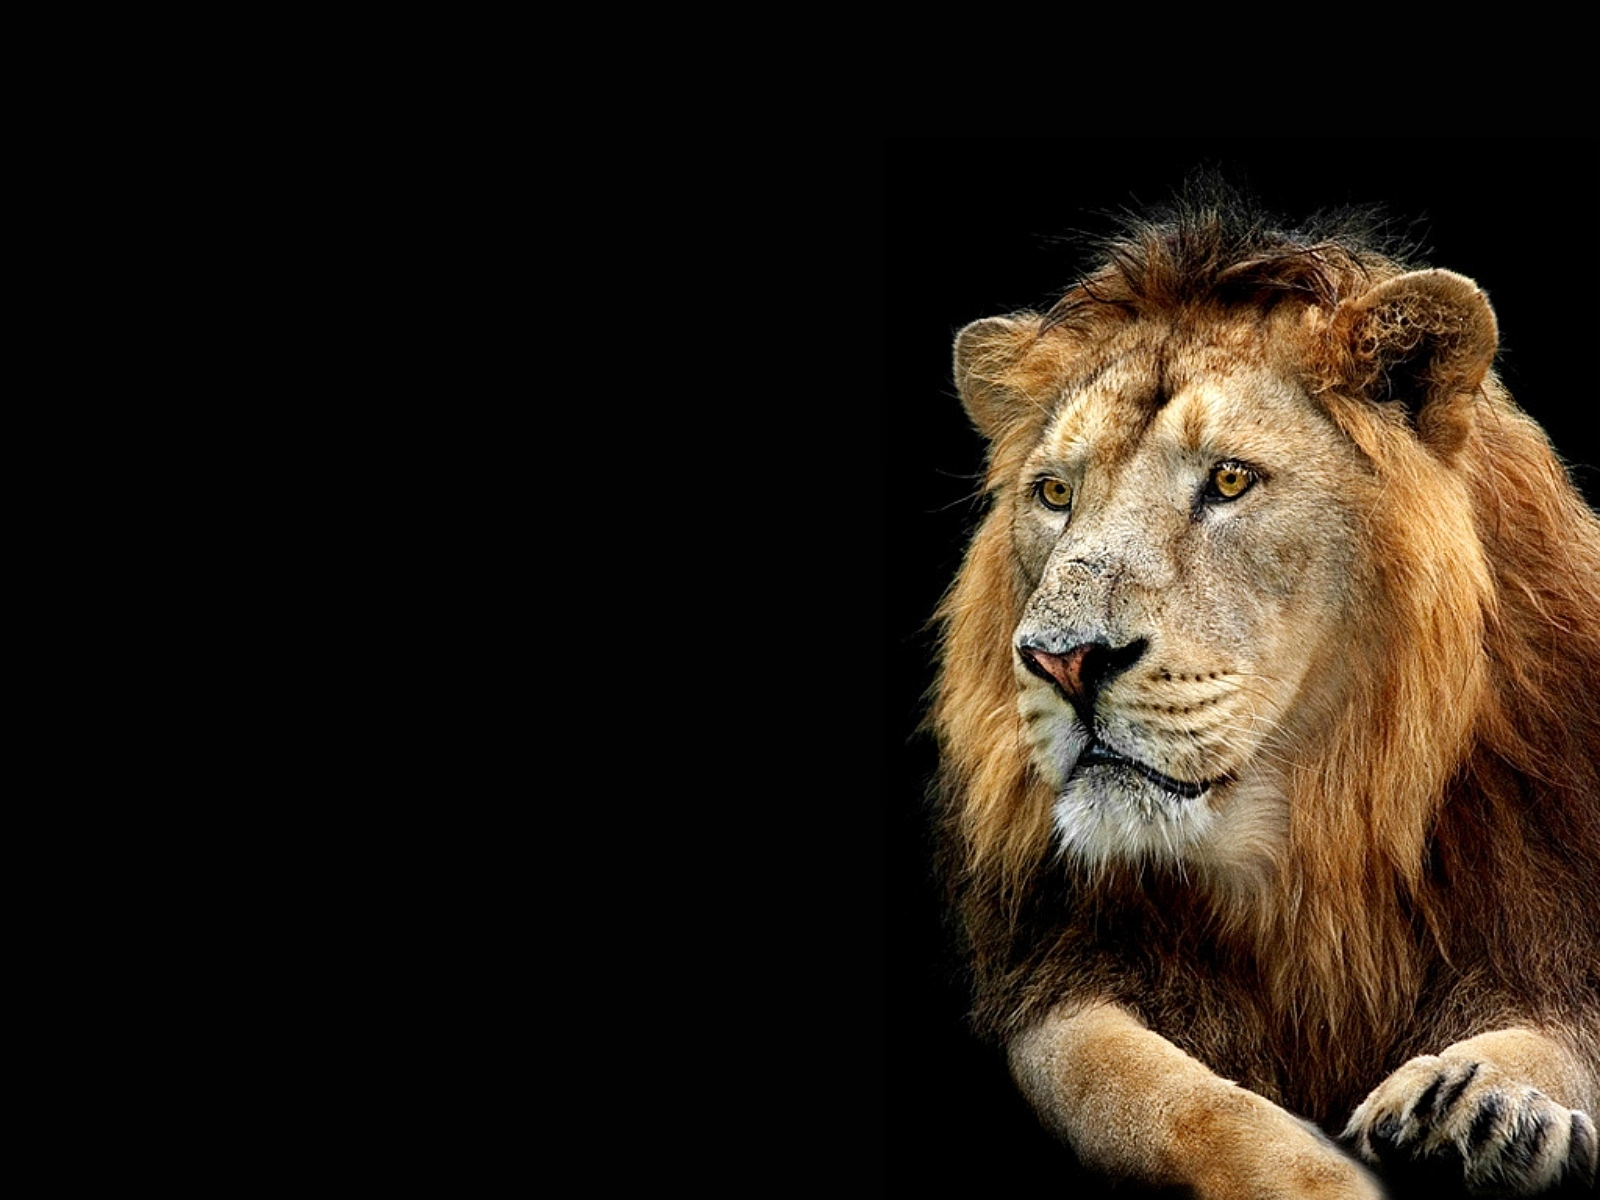 lion wallpapers | 3d wallpaper | nature wallpaper | free download